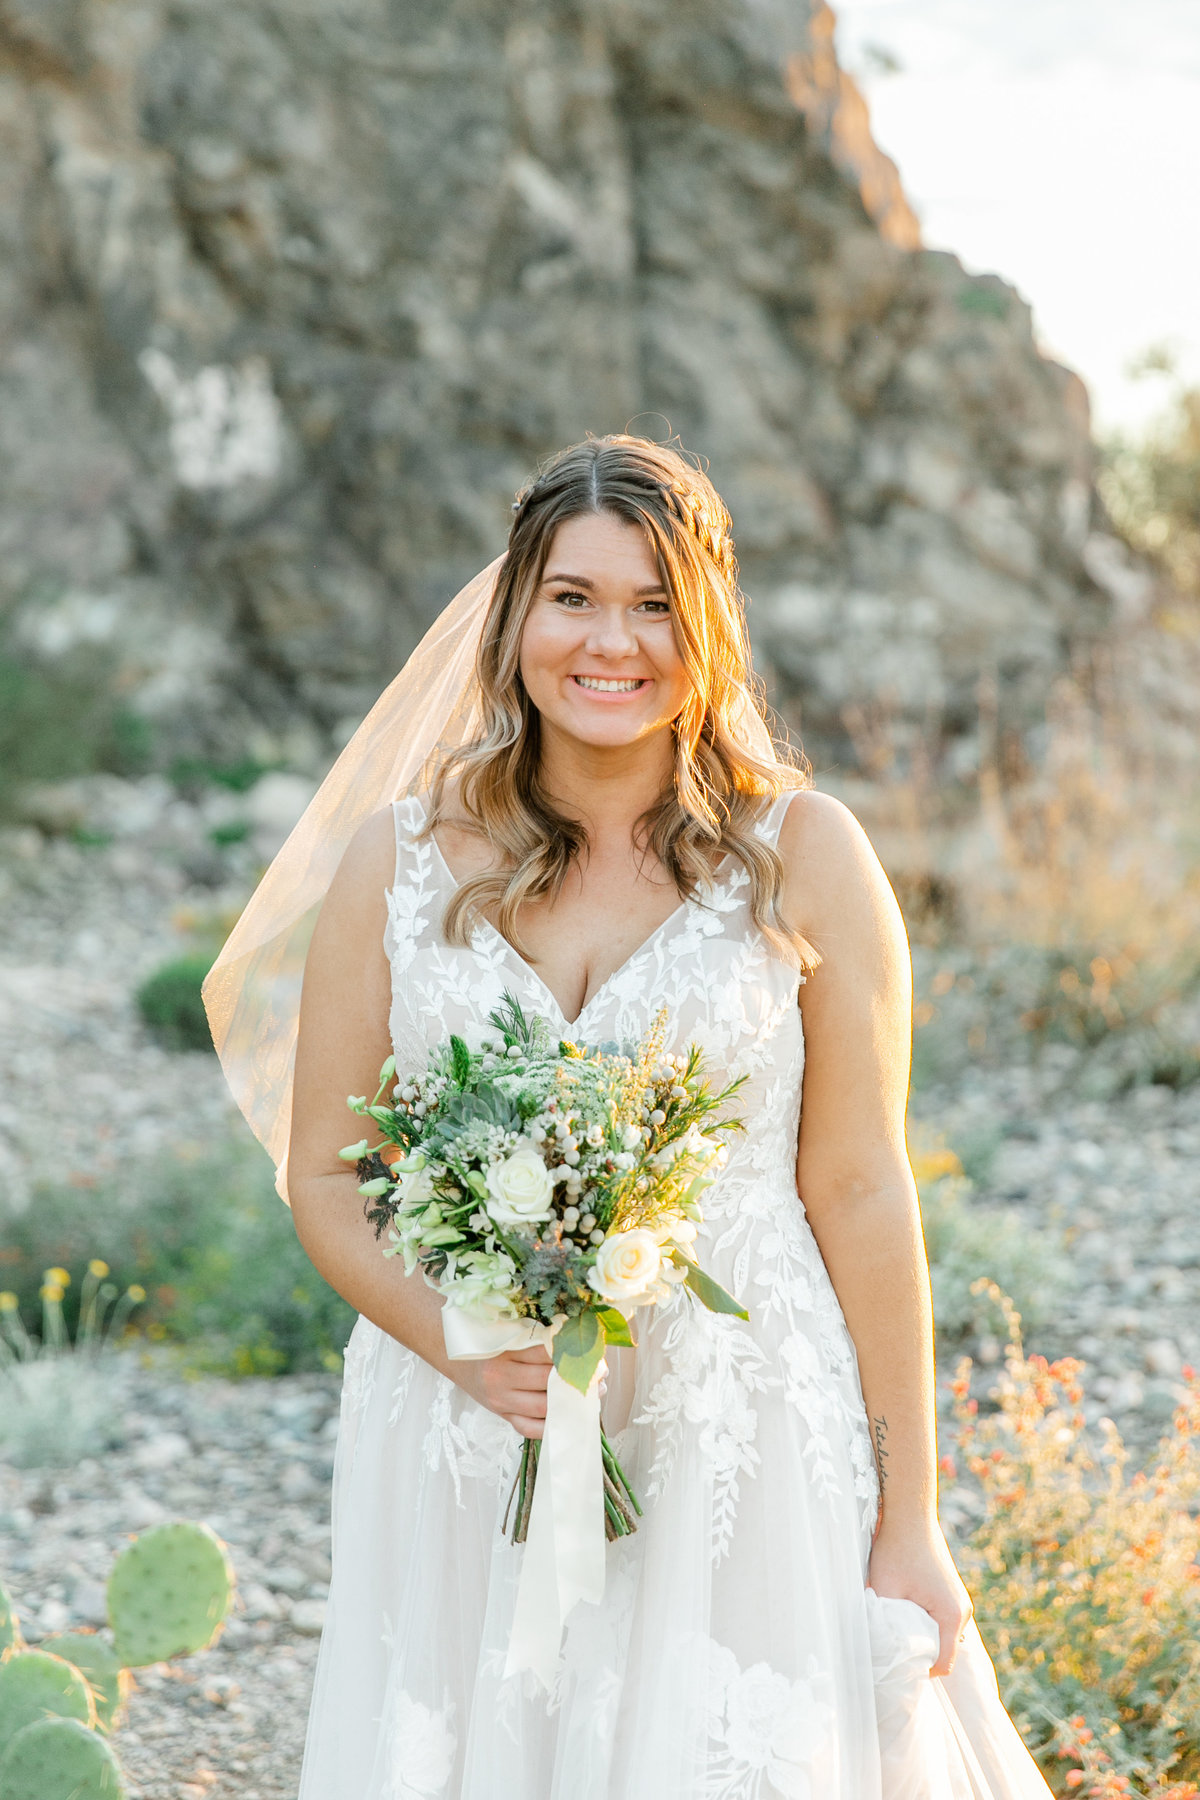 Karlie Colleen Photography - Arizona Backyard wedding - Brittney & Josh-228